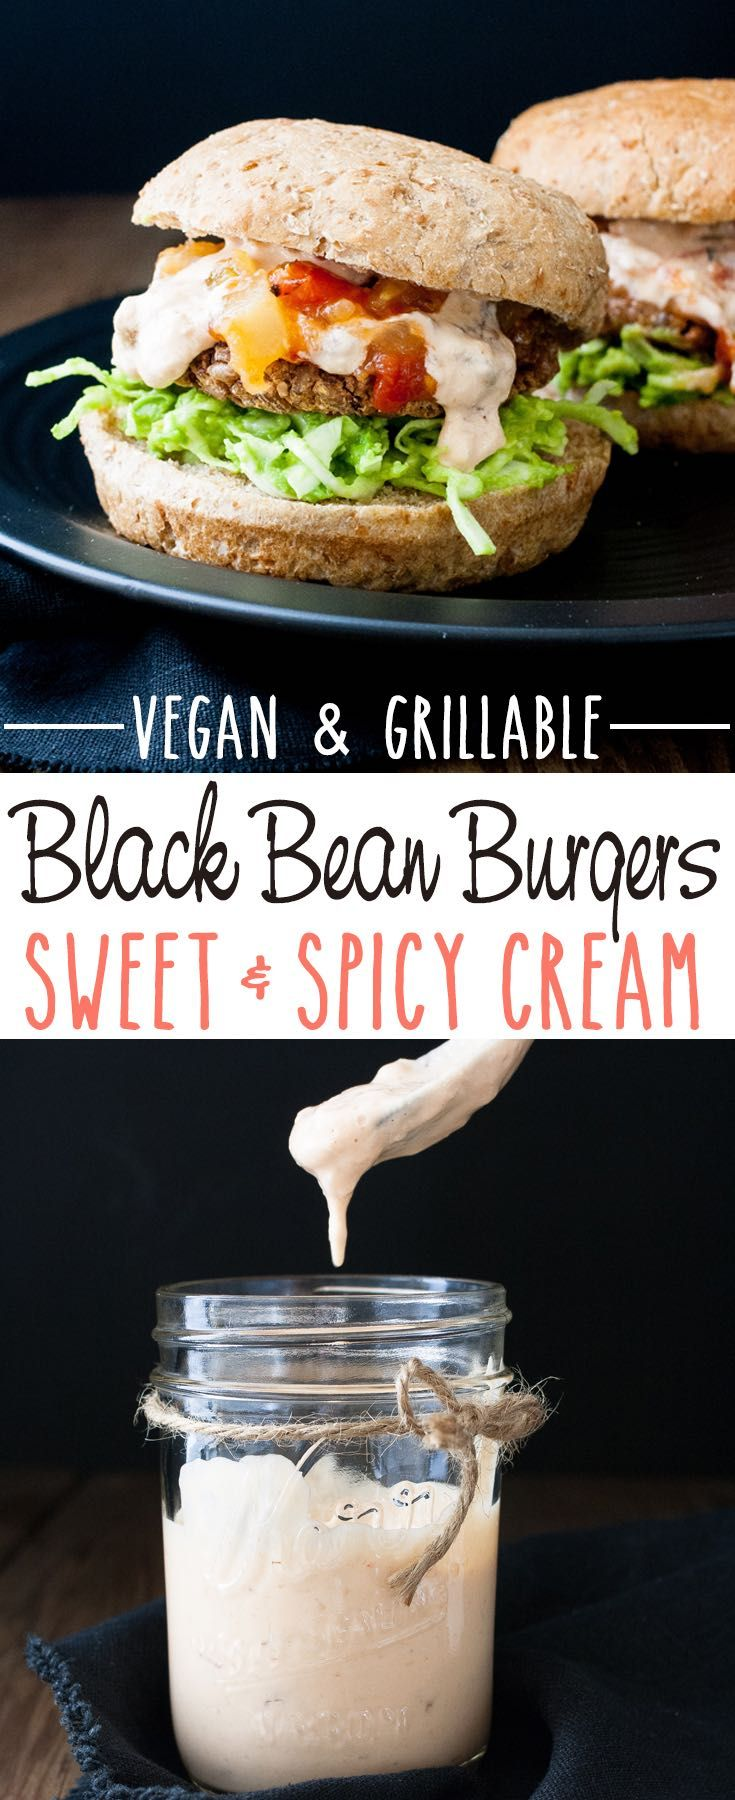 Easy Grillable Sweet and Spicy Vegan Black Bean Burgers with Mango Habanero…